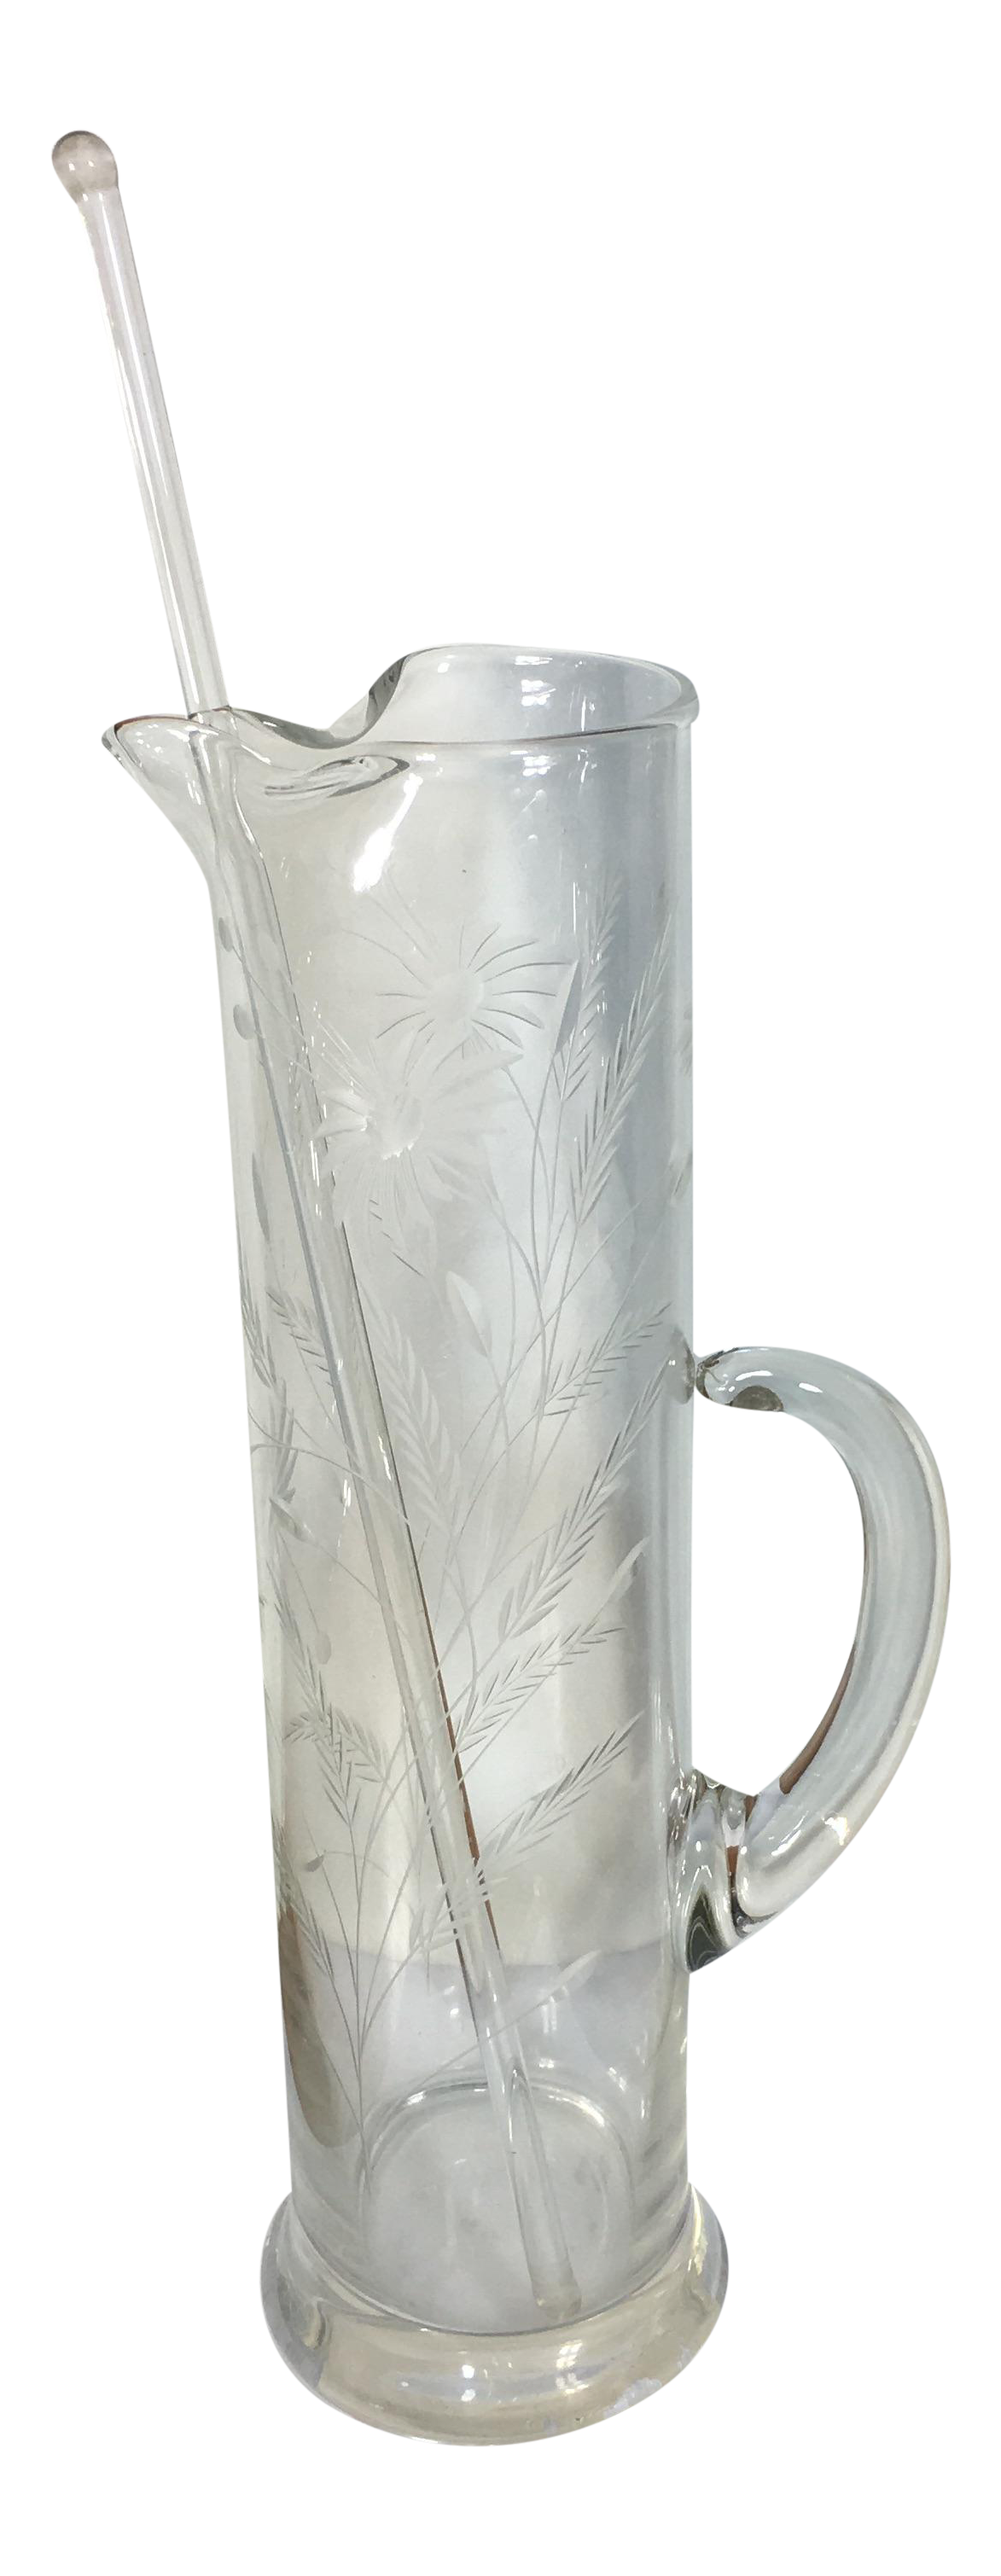 Vintage Etched Glass Cocktail Pitcher With Glass Stirrer